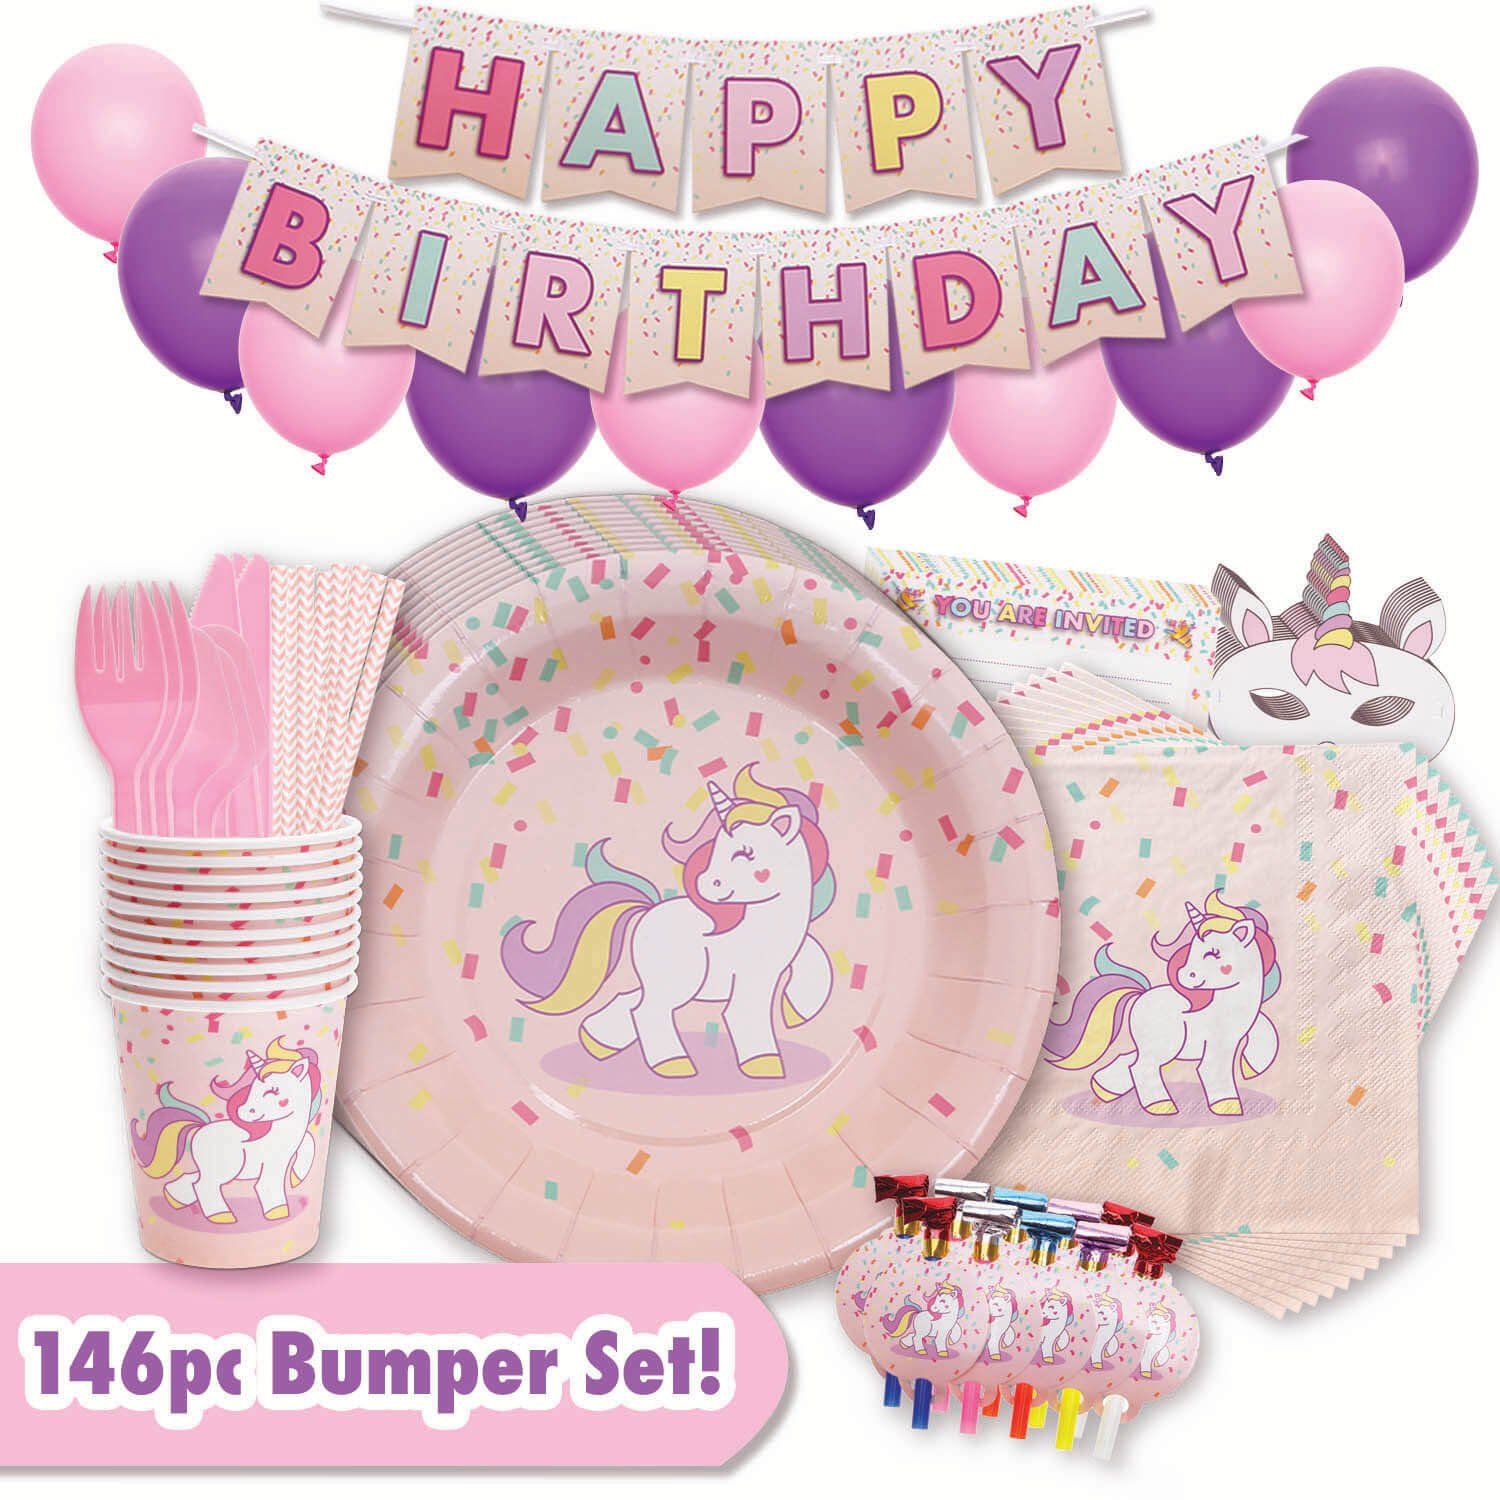 Unicorn Party Supplies Deluxe Set - 146pc Expanded Set - Everything Needed For A Magical Birthday - Unicorns on Plates, Cups, Cutlery, Cupcake Toppers, Napkins & Much More - Decorations Set Serves 10